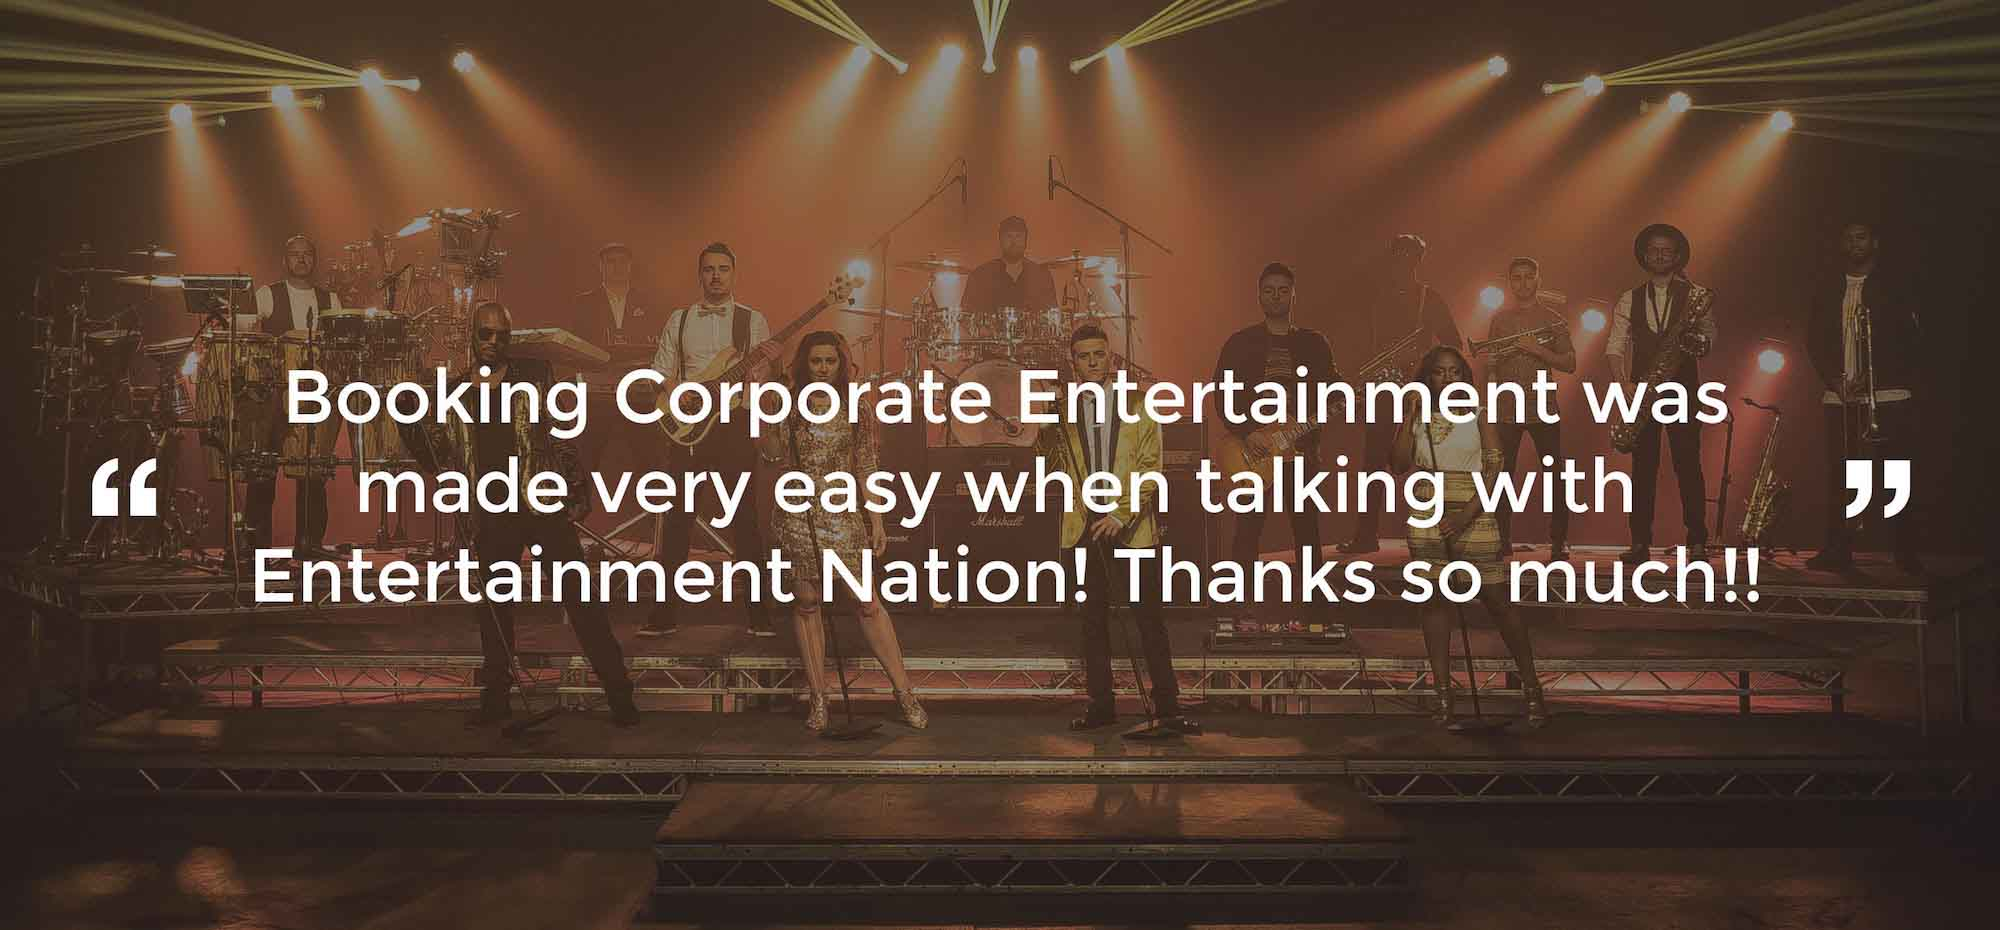 Client Review of Corporate Entertainment South Yorkshire